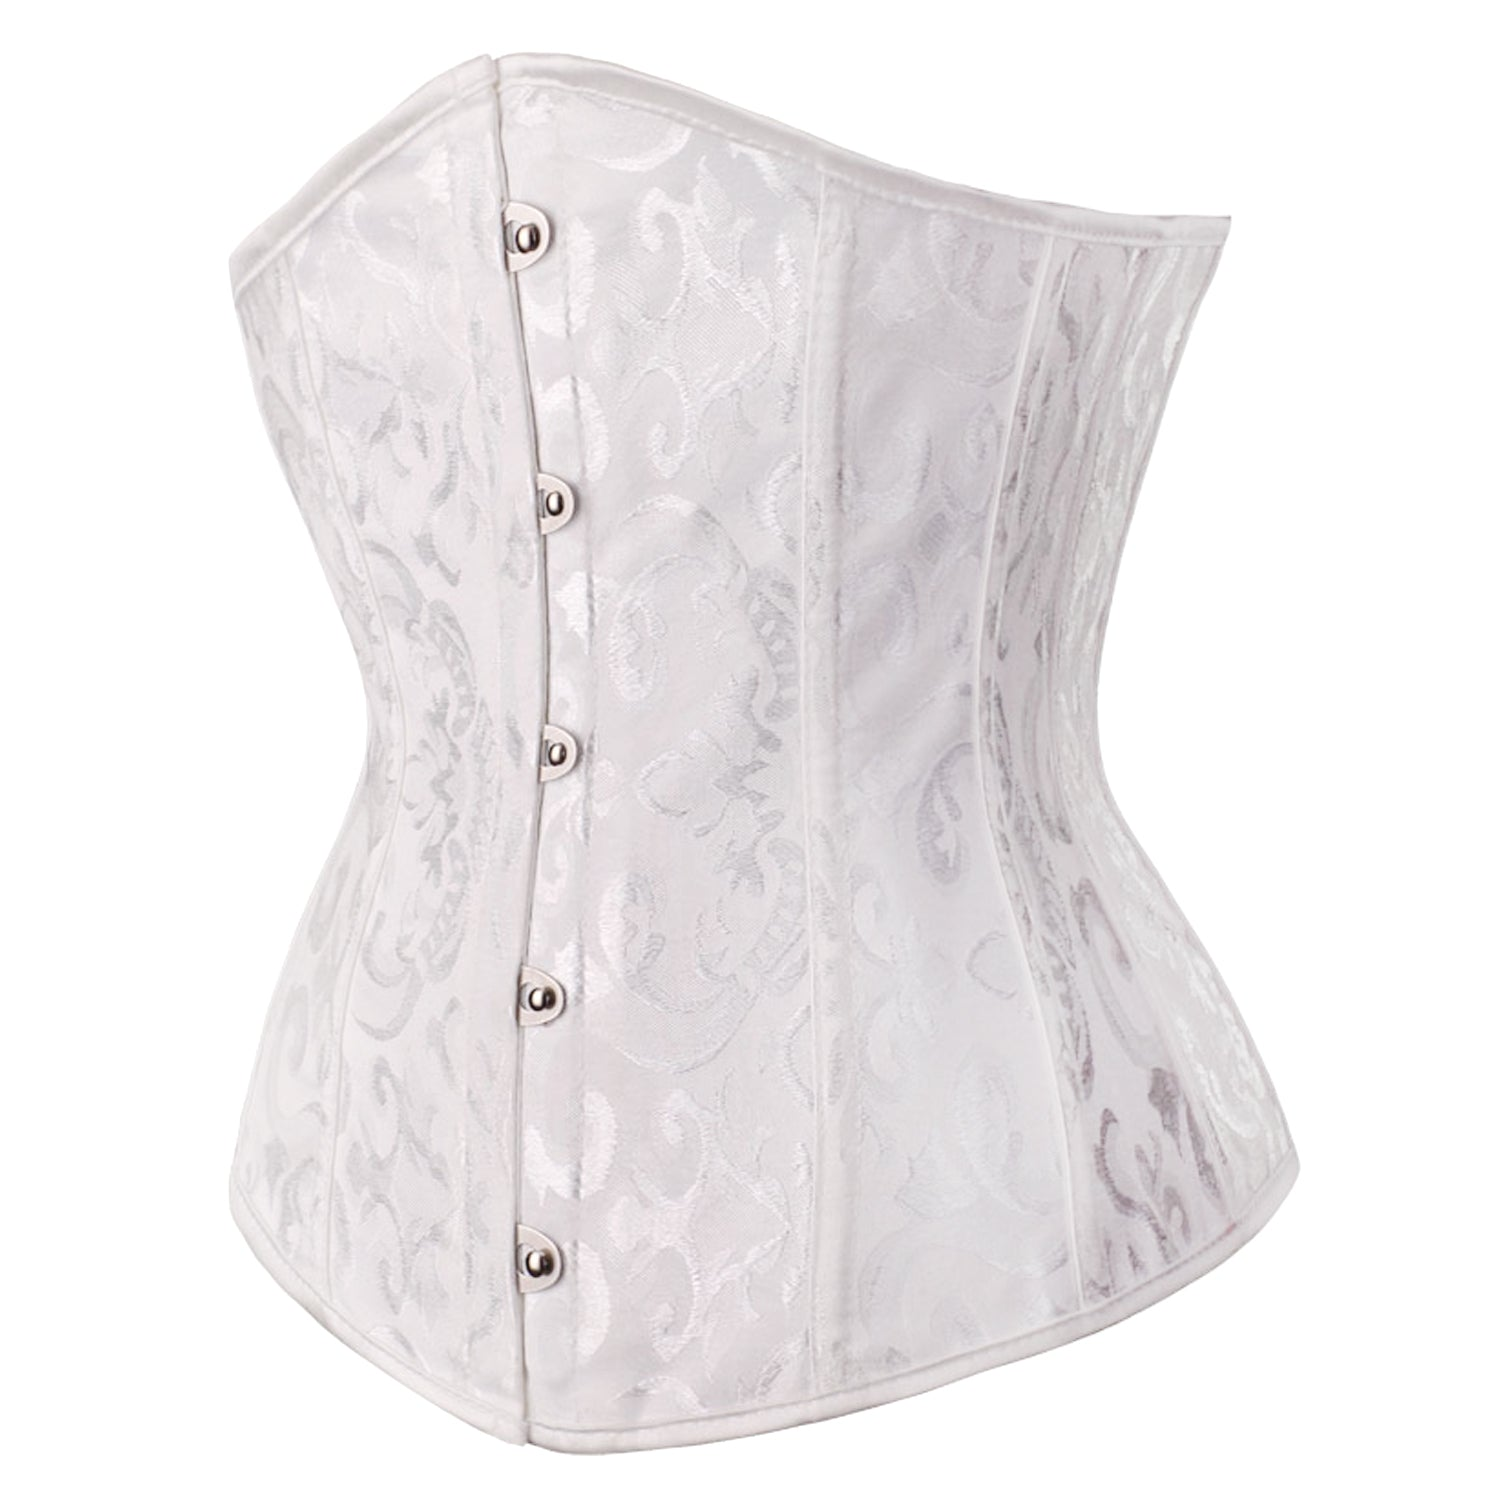 aa3adeea1b1 Underbust Corset Belt Lingerie Tops White – Bargoos Fashion